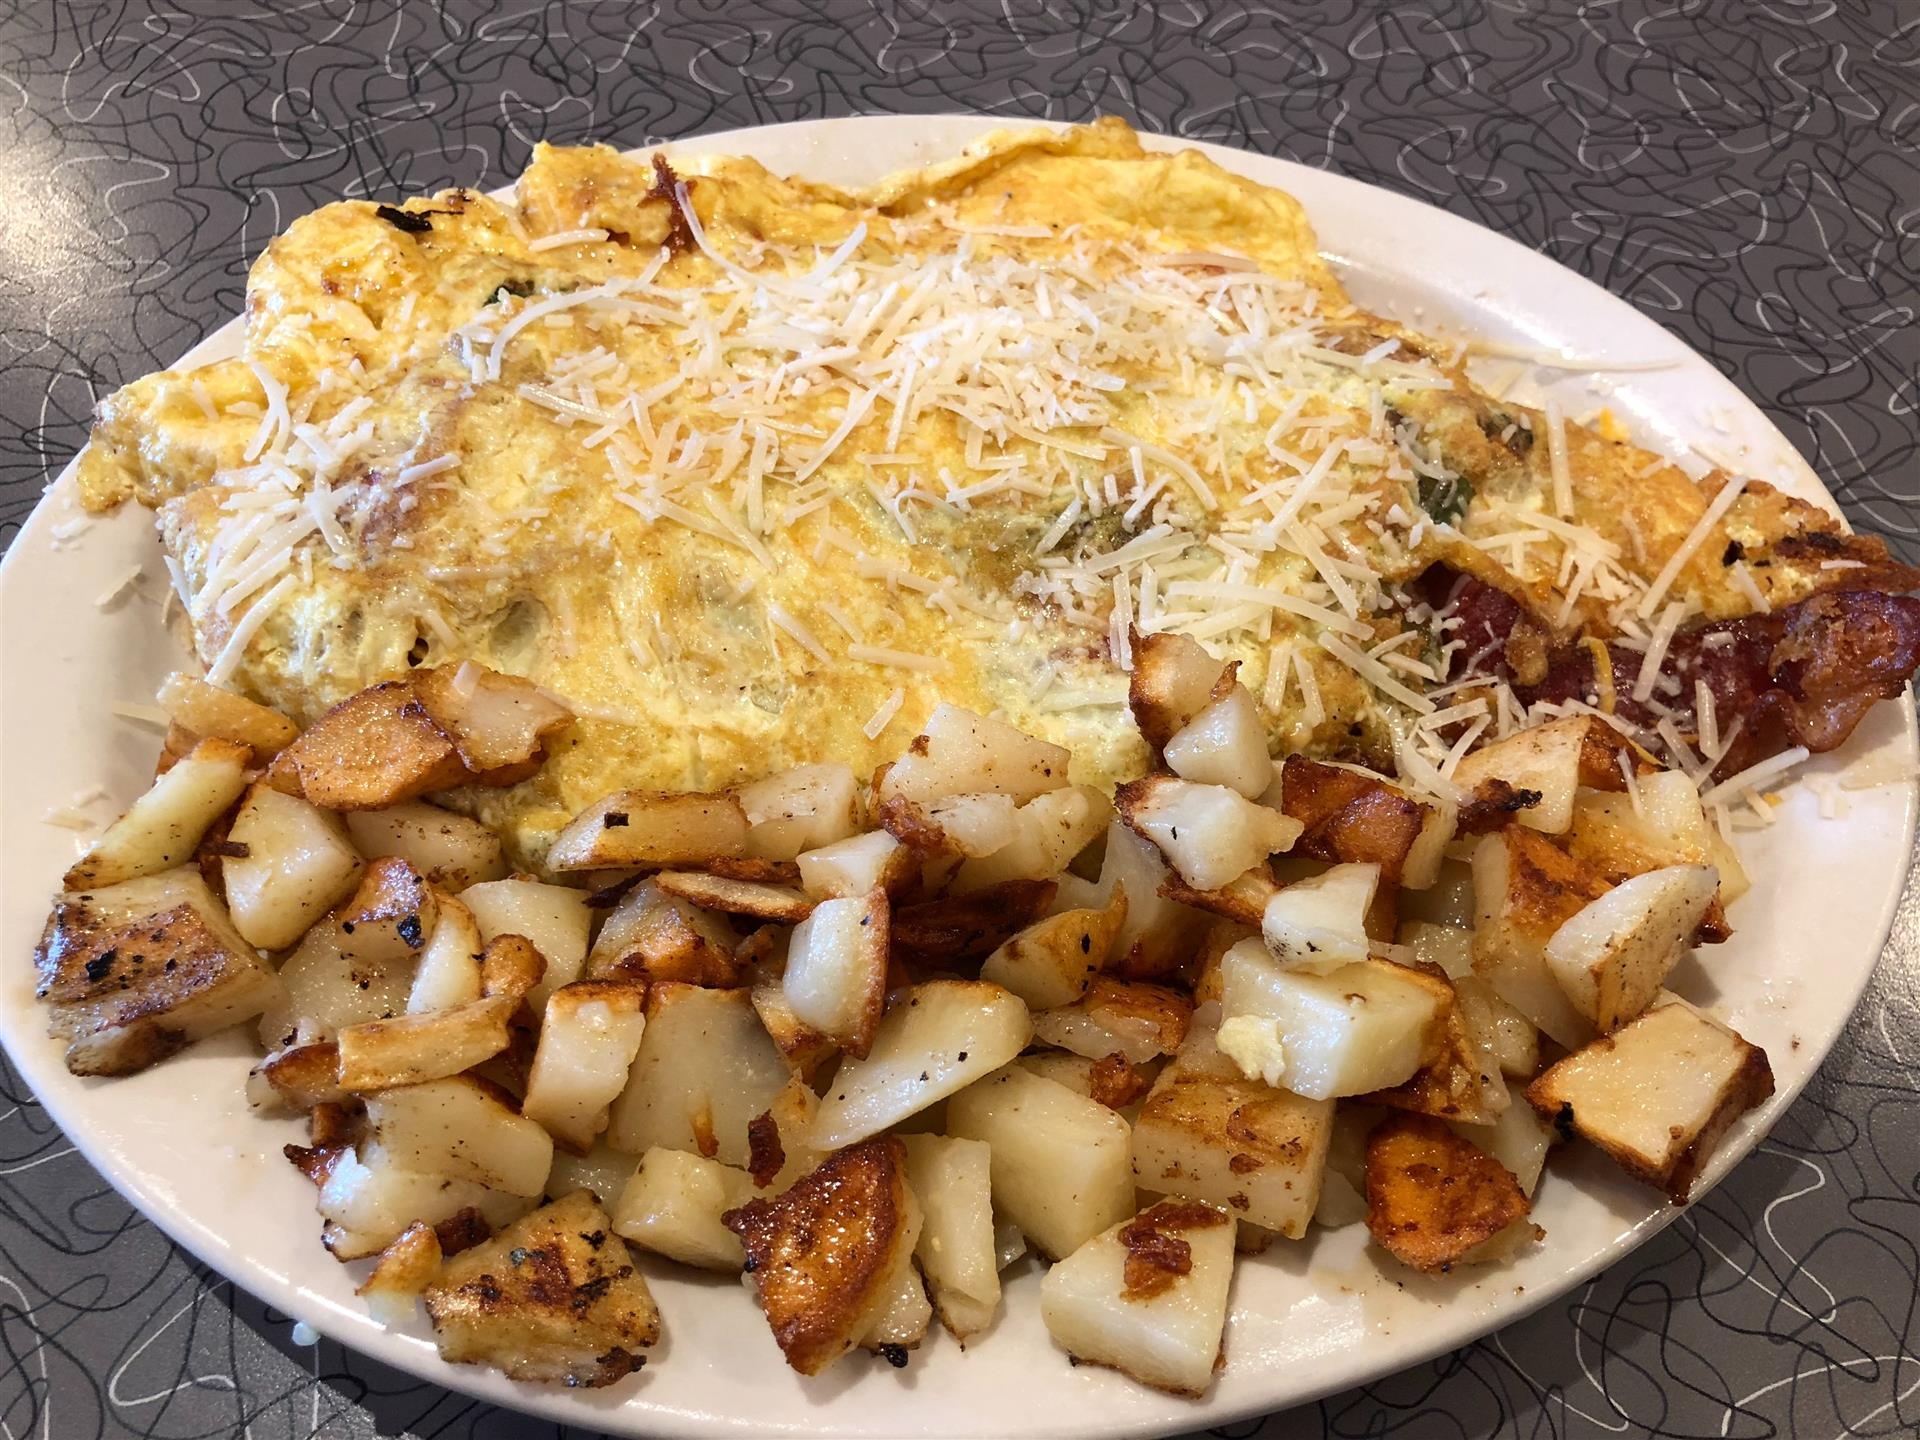 a breakfast omelet with a side of home fries